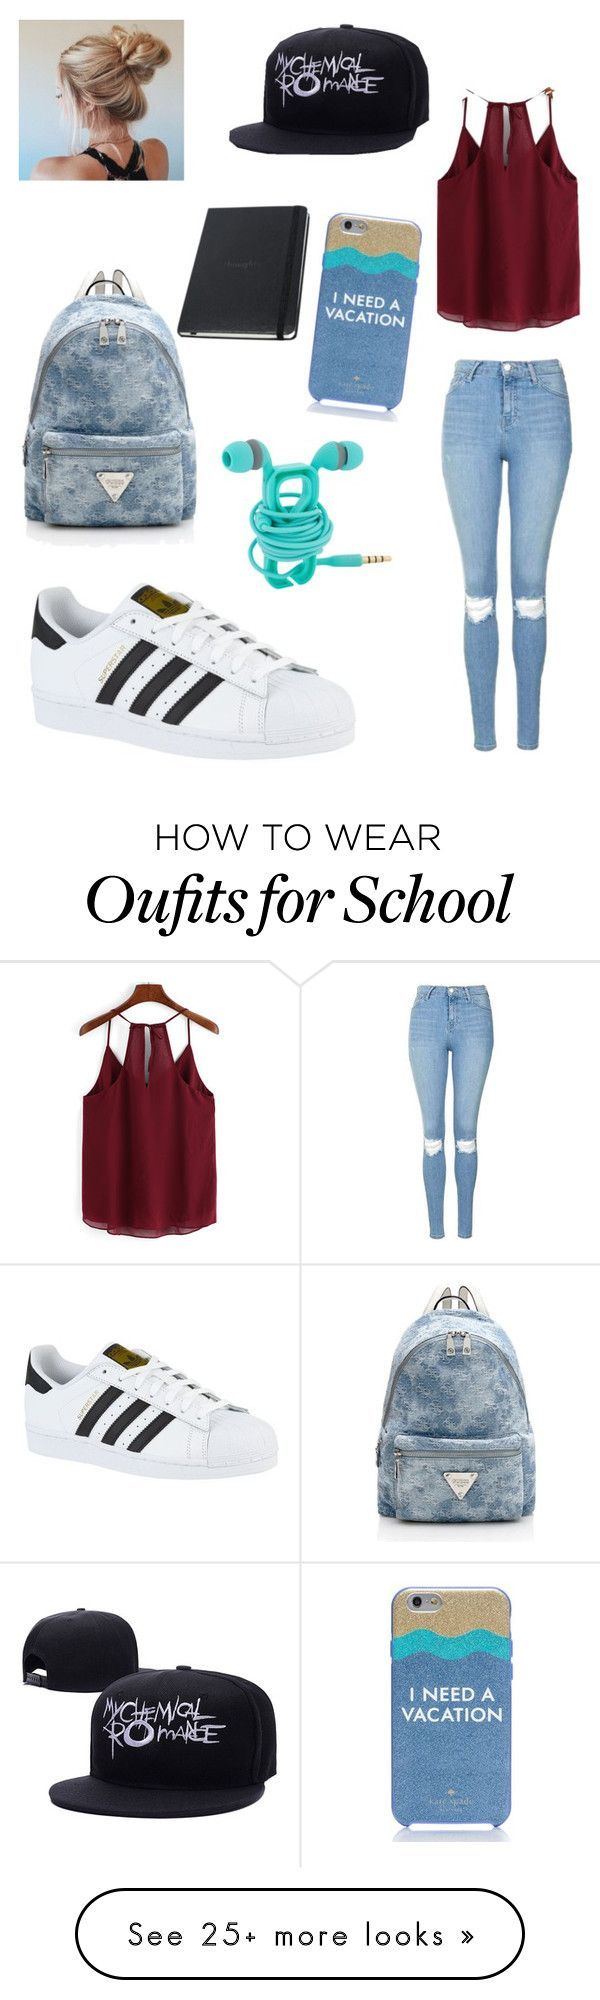 School by asexualkilljoy on Polyvore featuring Topshop, adidas and Kate Spade ,Adidas shoes #adidas #shoes